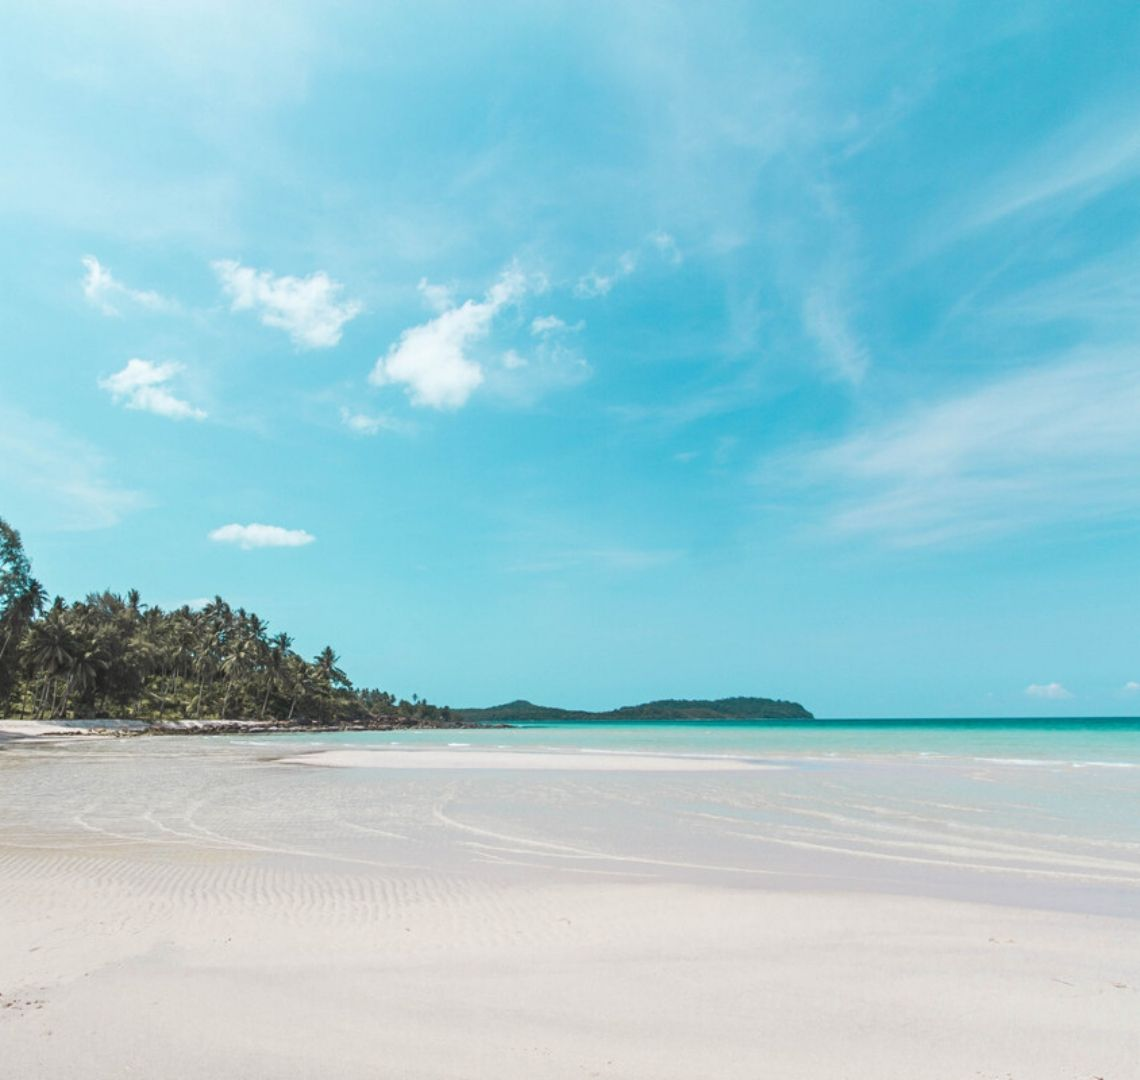 Koh Kood beach has white white sand and bright turquoise water. On the left are a collection of palm trees and above is a bright blue sky.